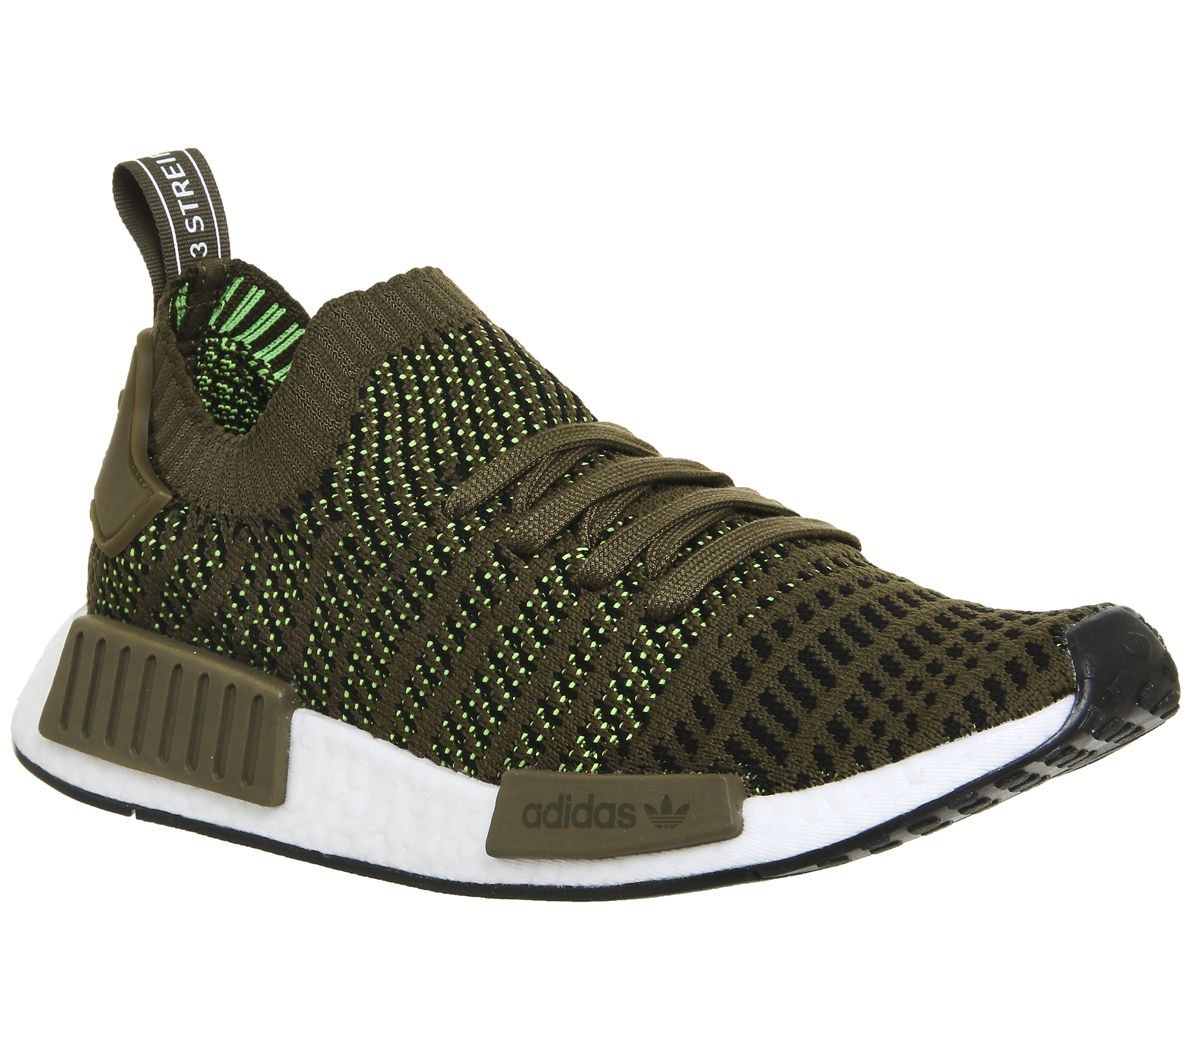 52cbb66539bdf adidas Nmd R1 Prime Knit Trainers Trace Olive - Unisex Sports